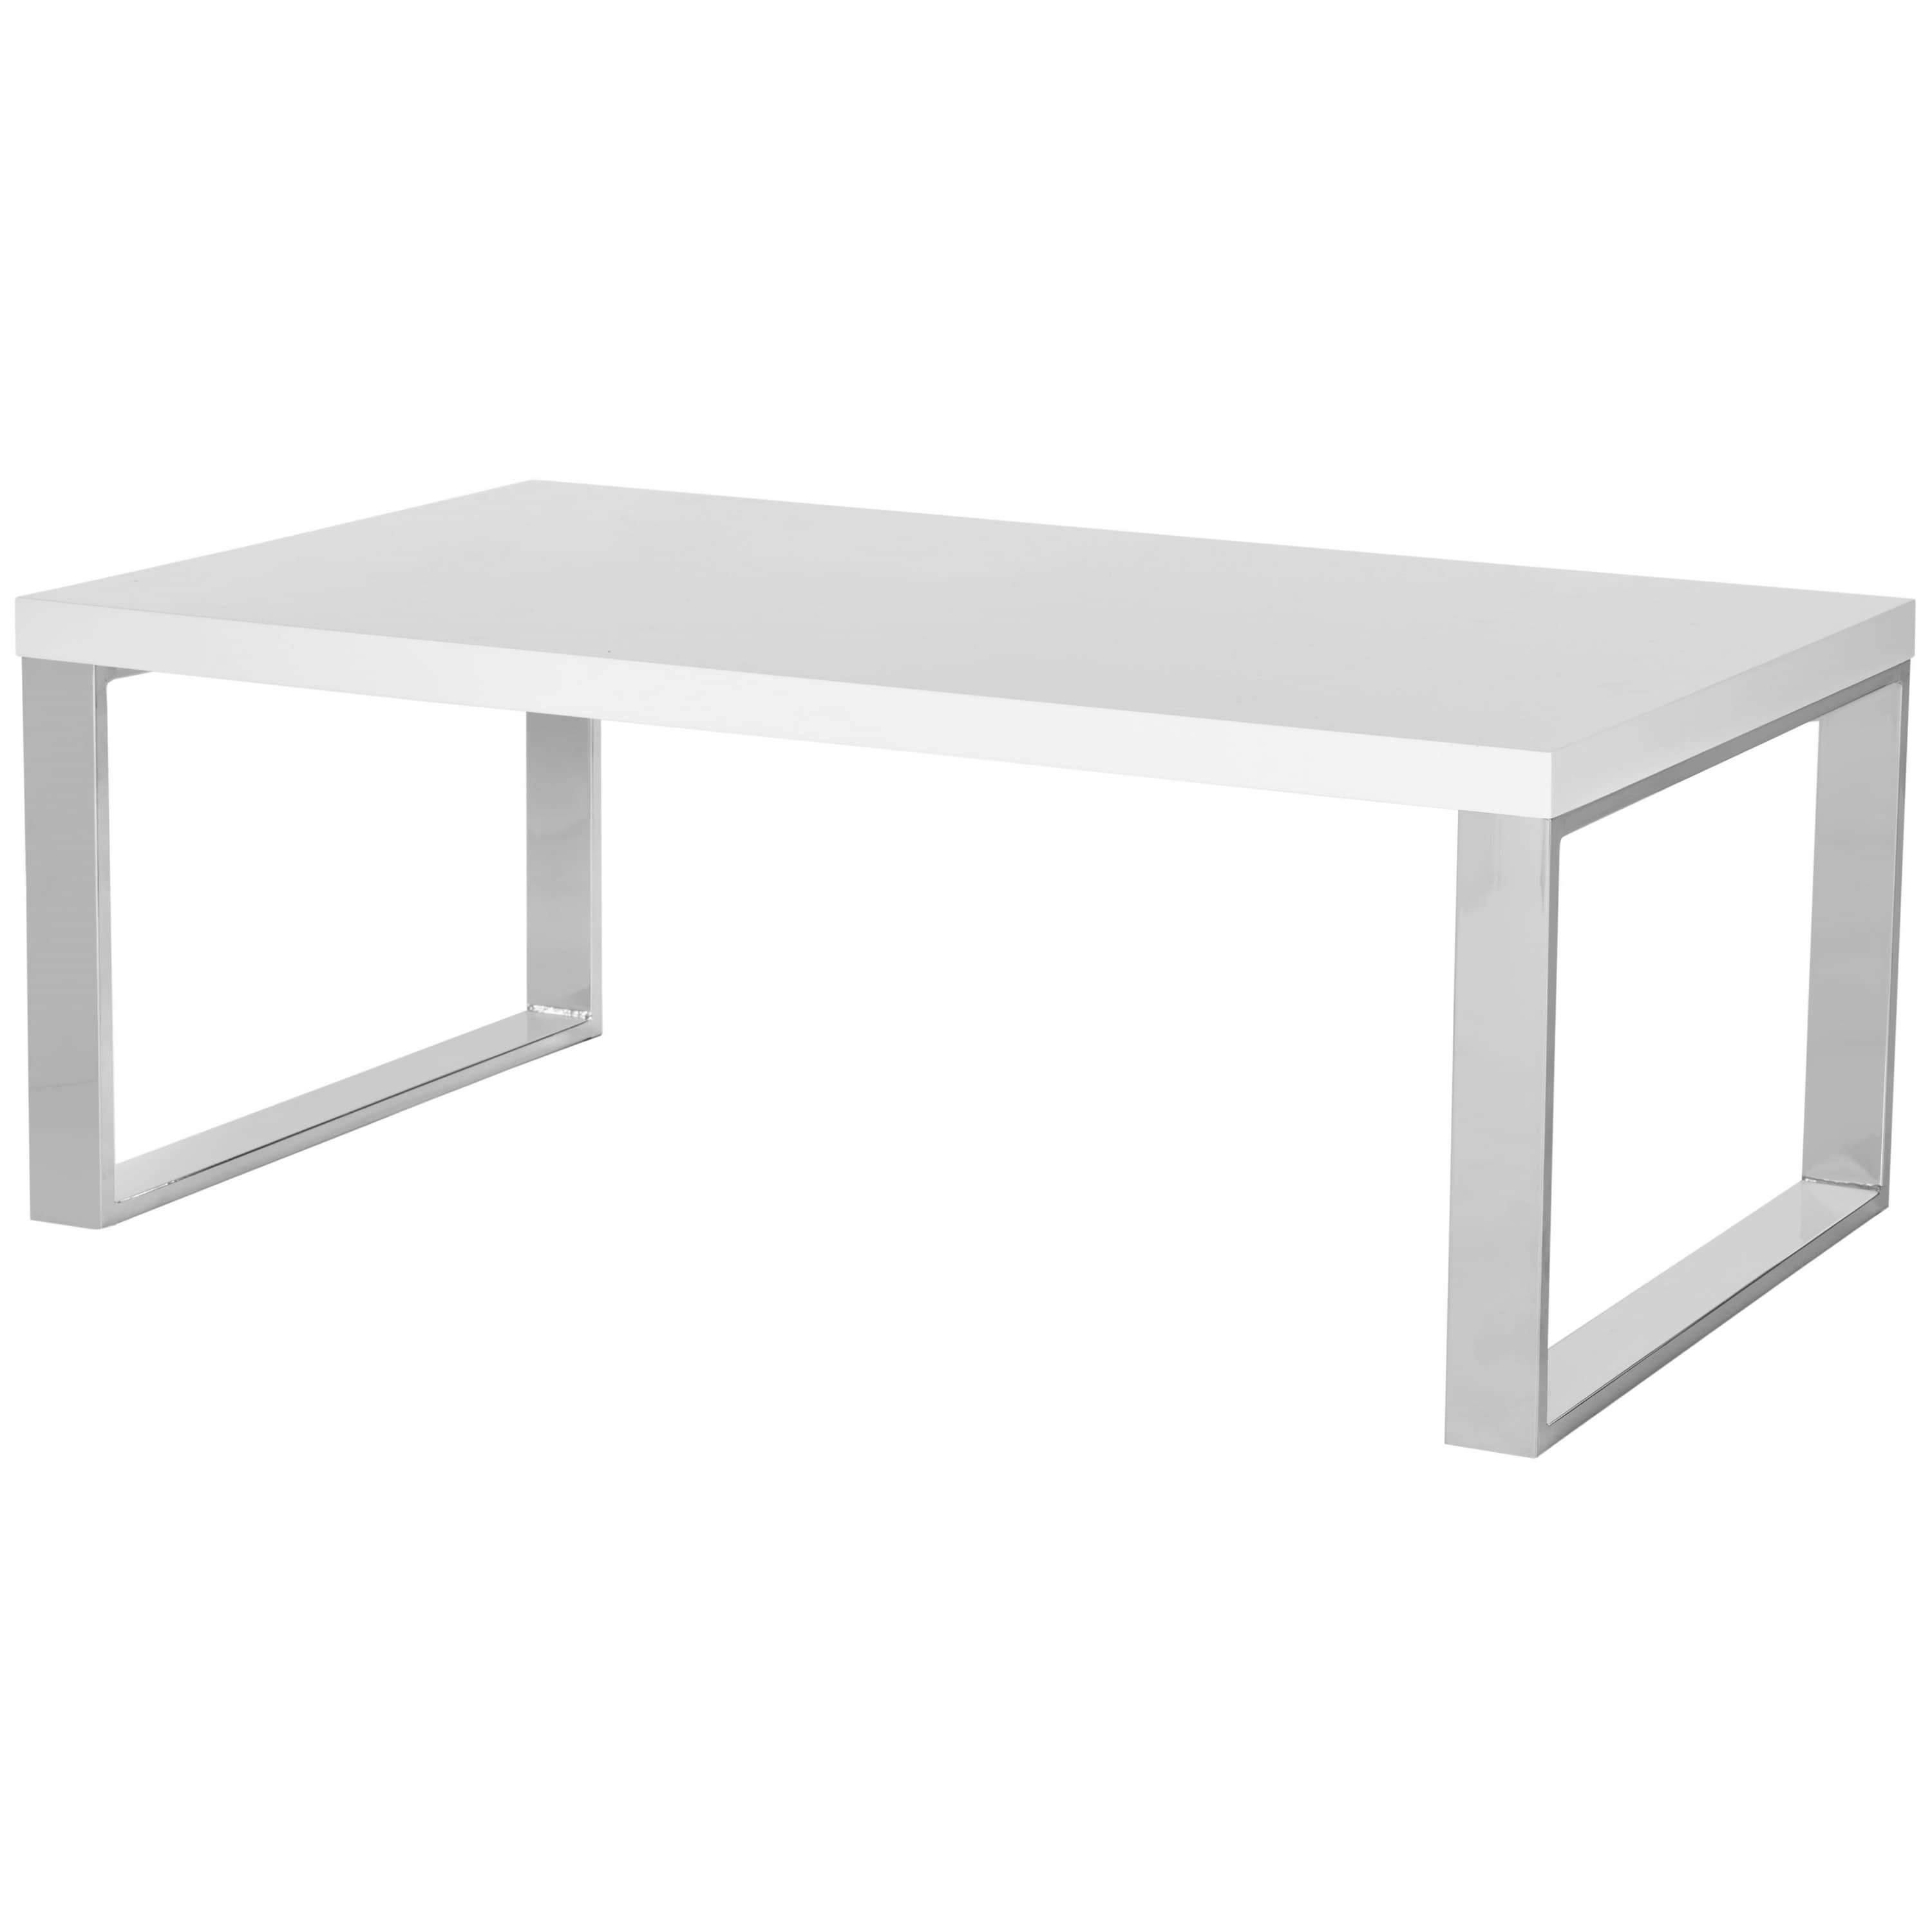 Newest White And Chrome Coffee Tables Intended For Safavieh Rockford White/ Chrome Coffee Table – Free Shipping Today (View 14 of 20)